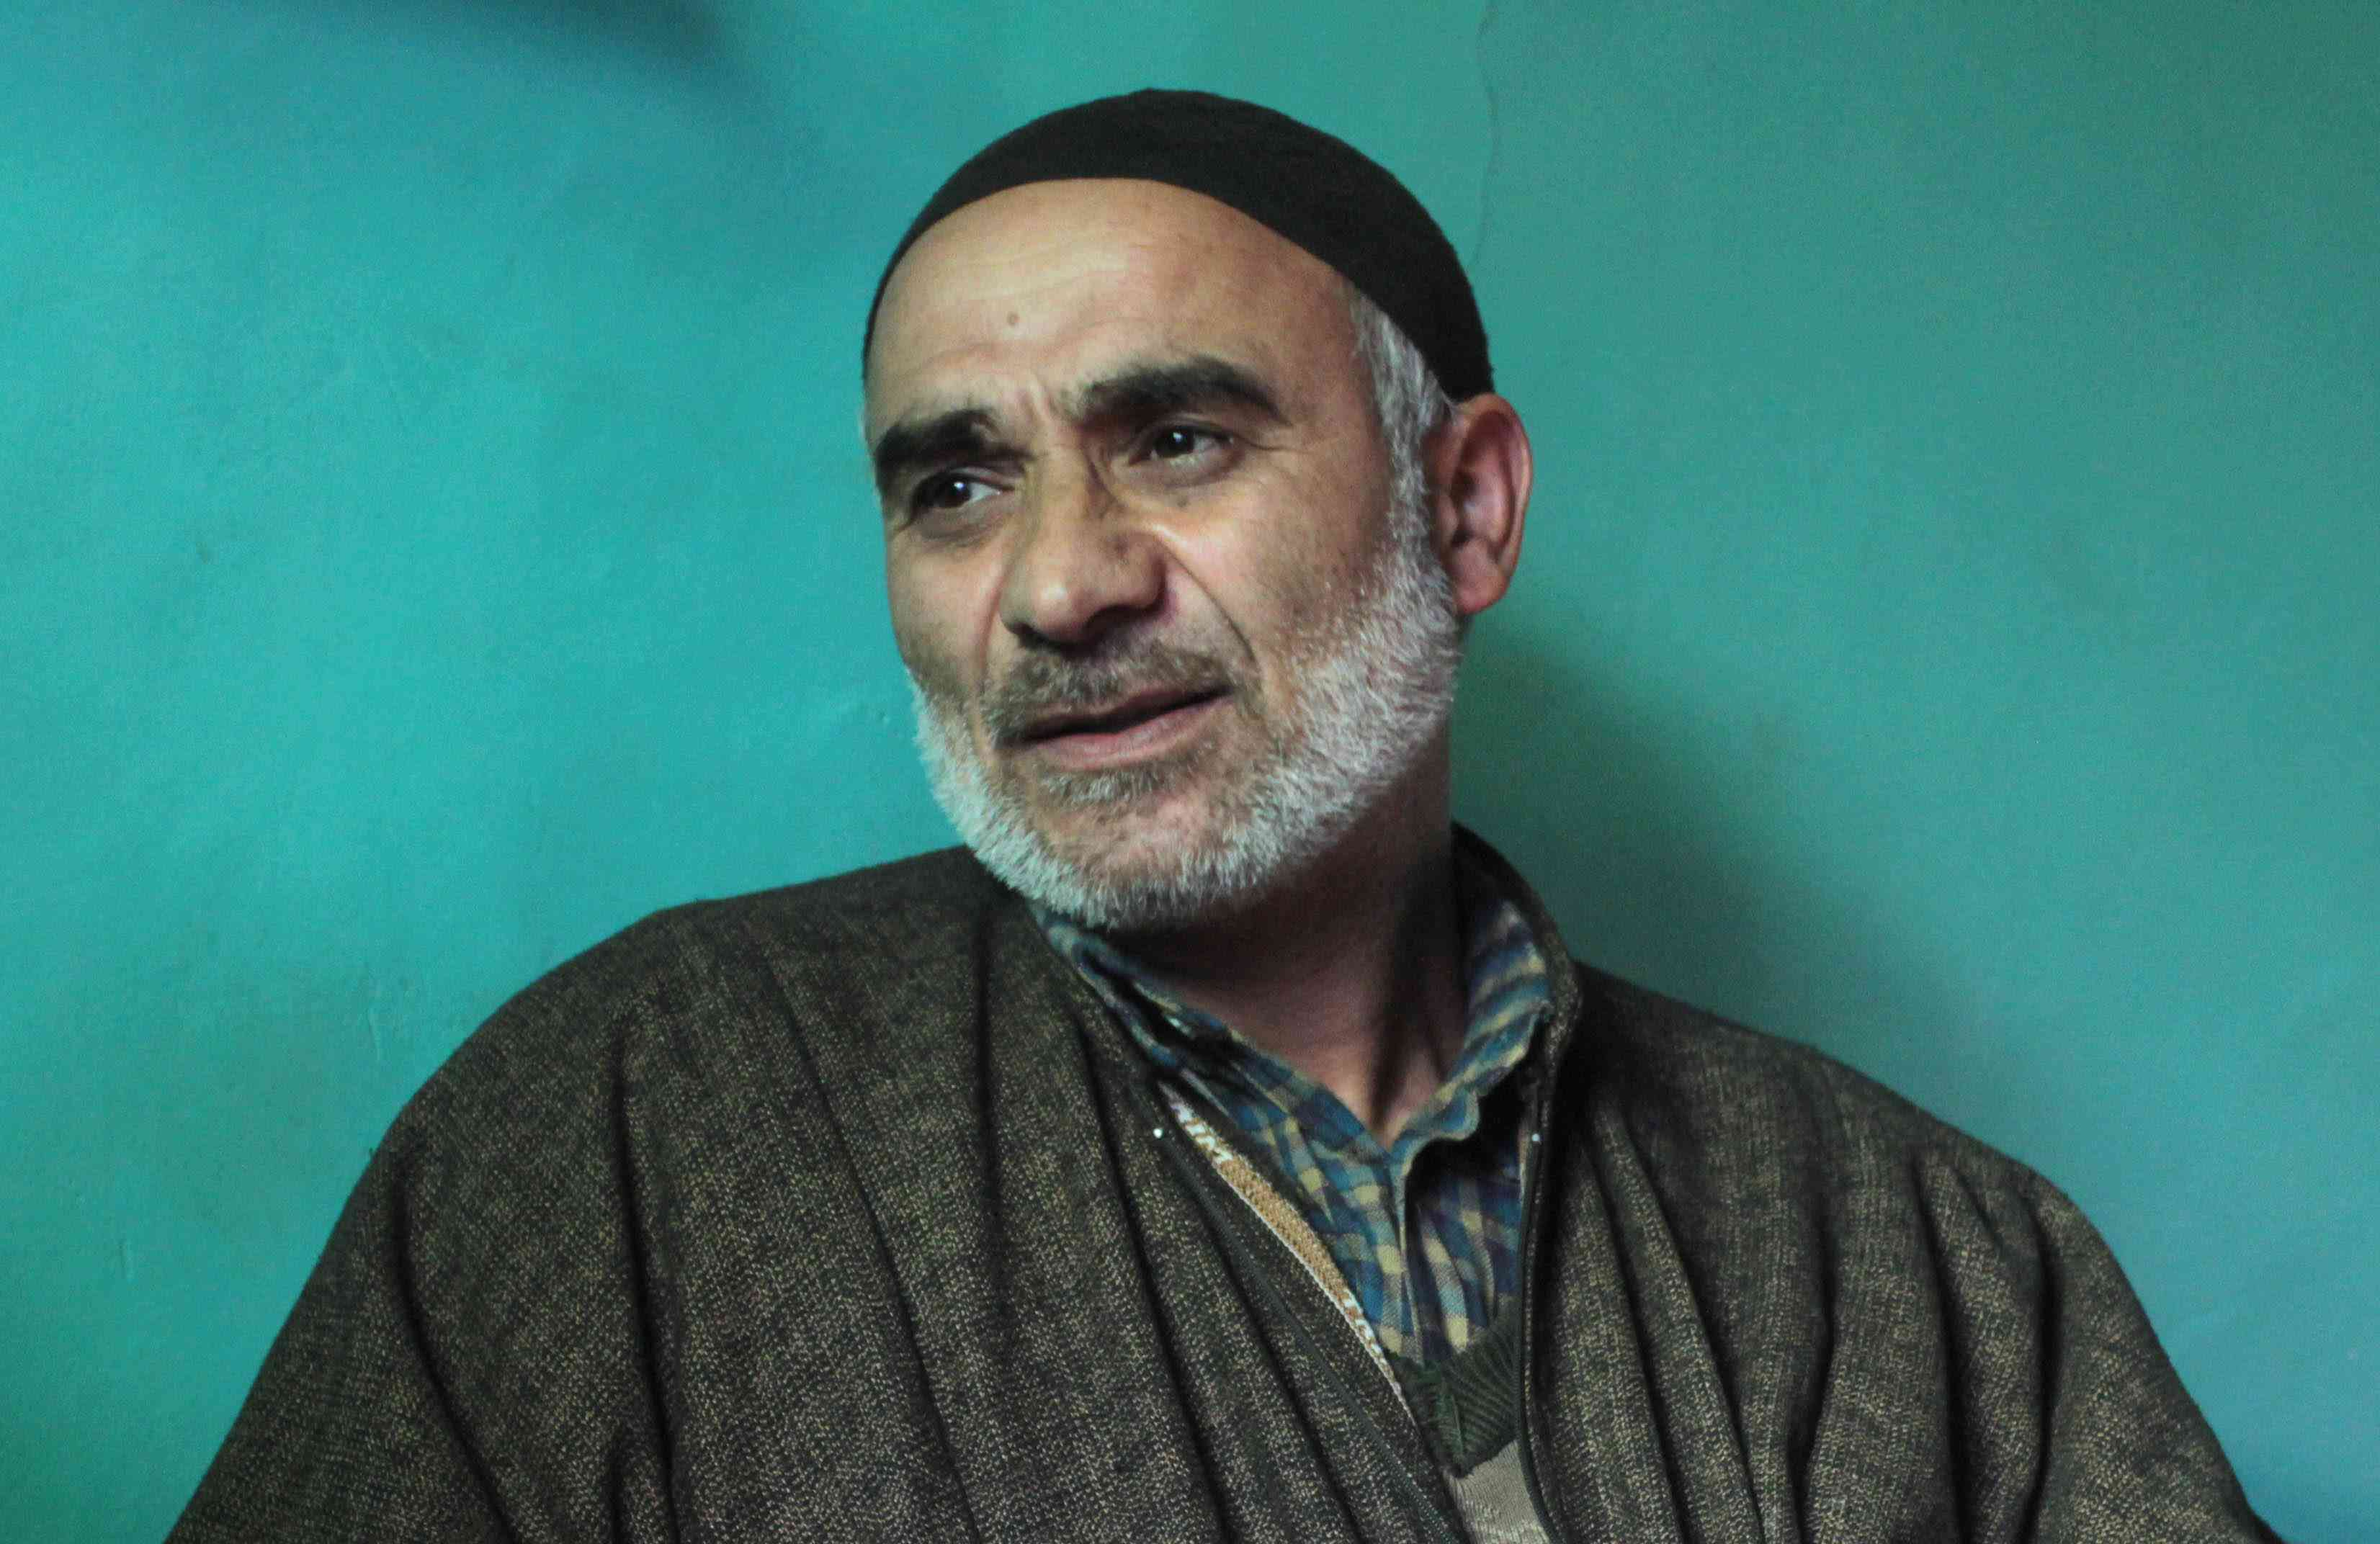 Manzorr Ahmad Bhat, father of Nadeem Manzoor, said they were in the dark about his son's alleged role as an informer.